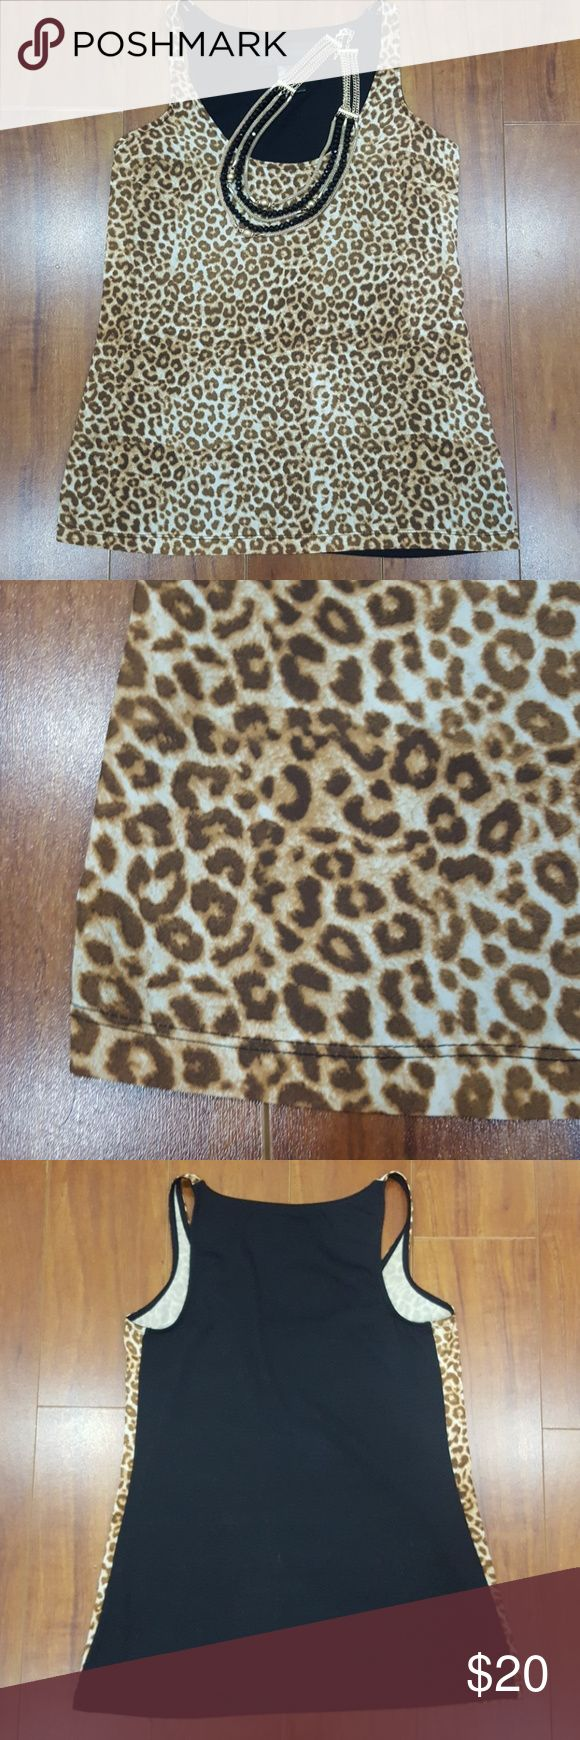 Kardashian Kollection Leopard Print Cami You have an opportunity to own this gorgeous sophisticated leopard print cami by the Kardashian Kollection.  Animal print is a staple  with the Kardashian fashion.  Leopard print on the front and semi sheer solid black at the back.  Front is 100% Polyester, back is 100% Polyester. Kardashian Kollection Tops Camisoles